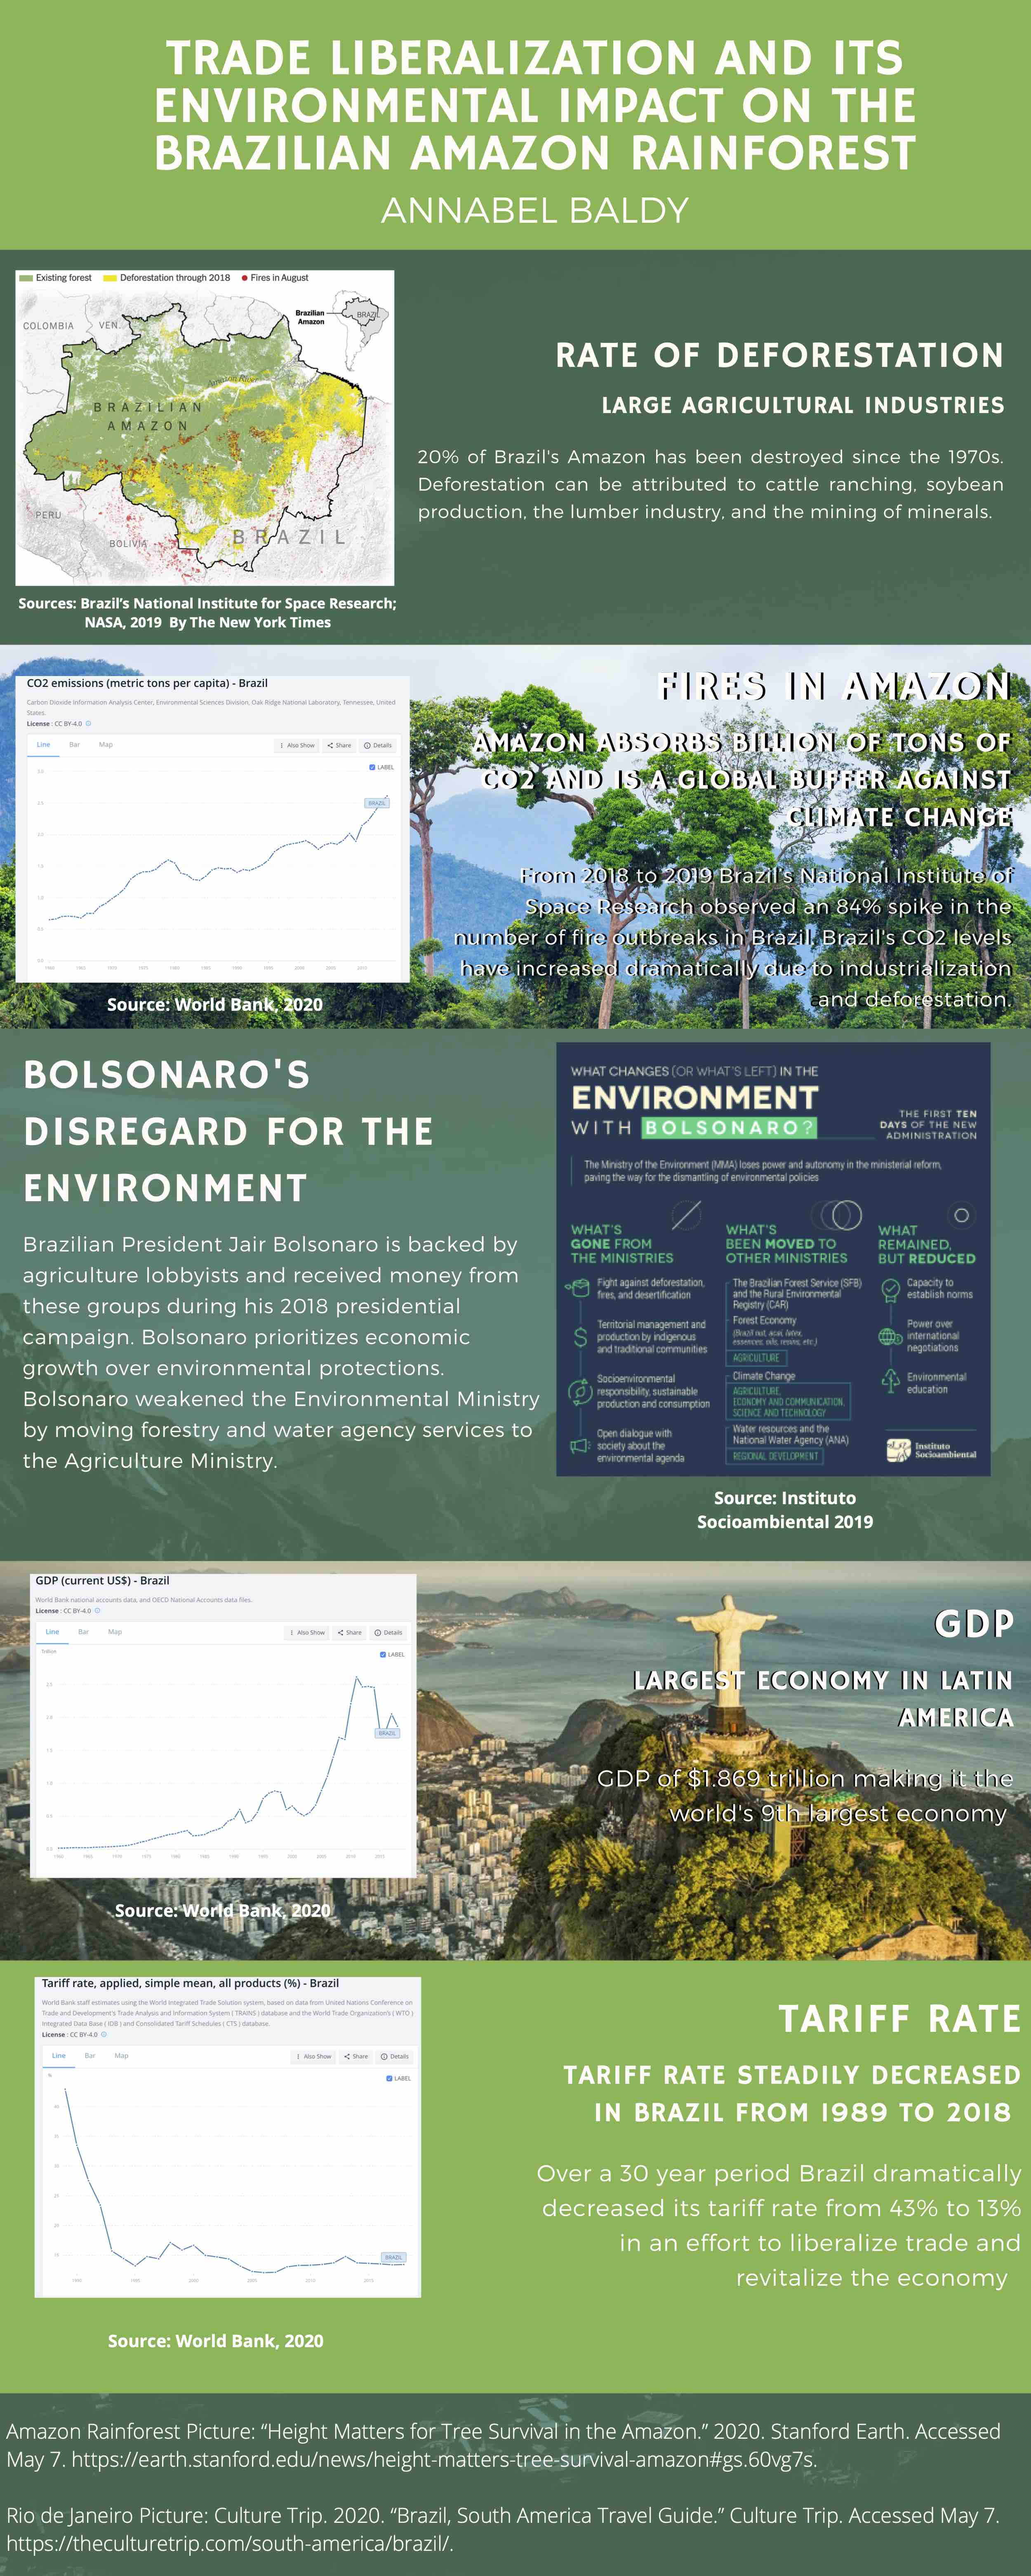 Trade and the environment in Brazil (Annabel Baldy)